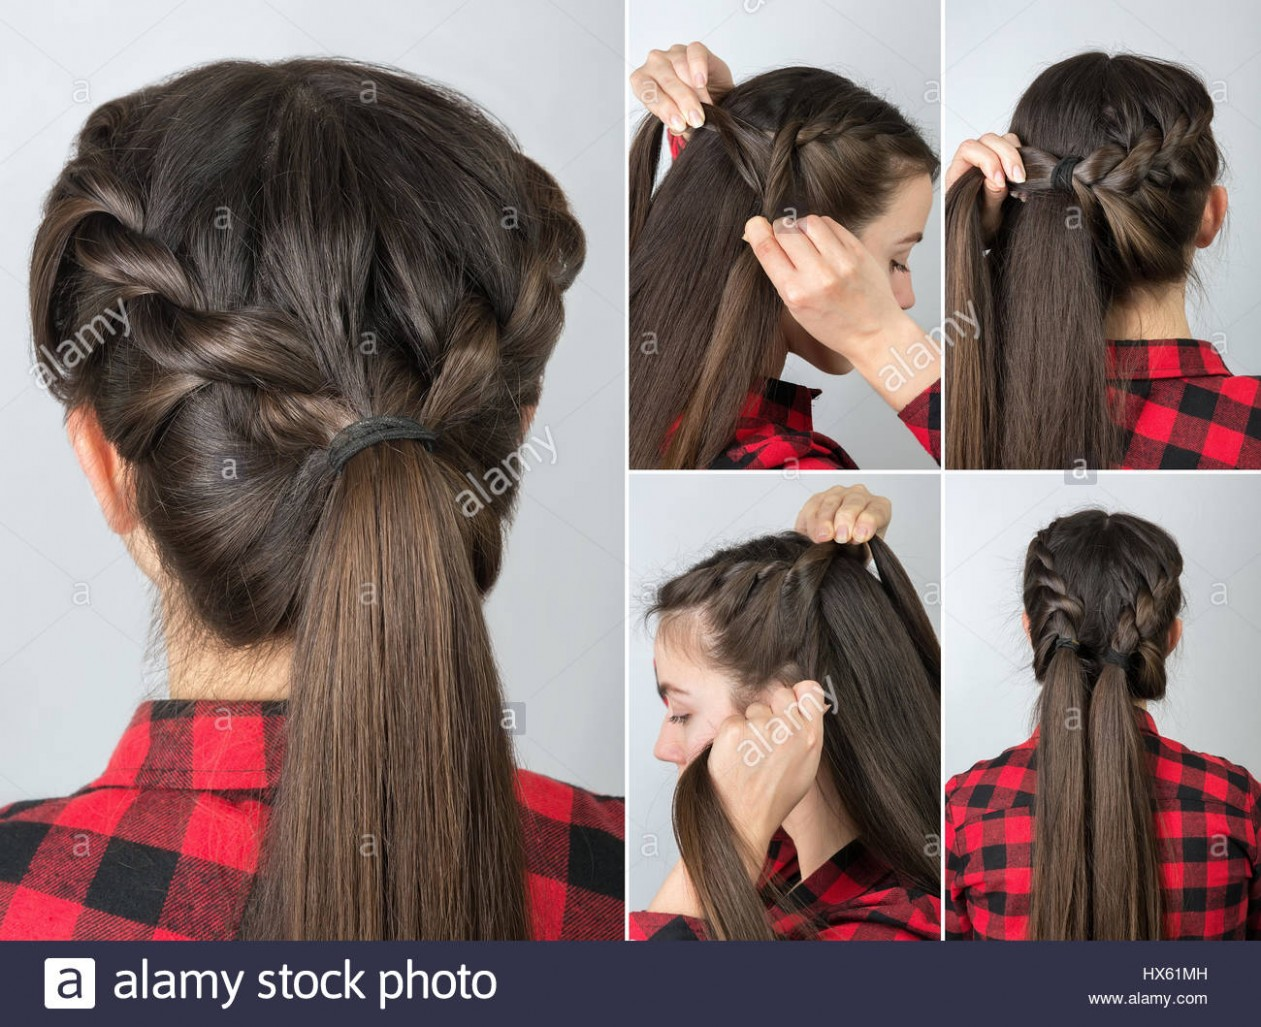 simple twisted hairstyle tutorial step by step. Easy hairstyle for